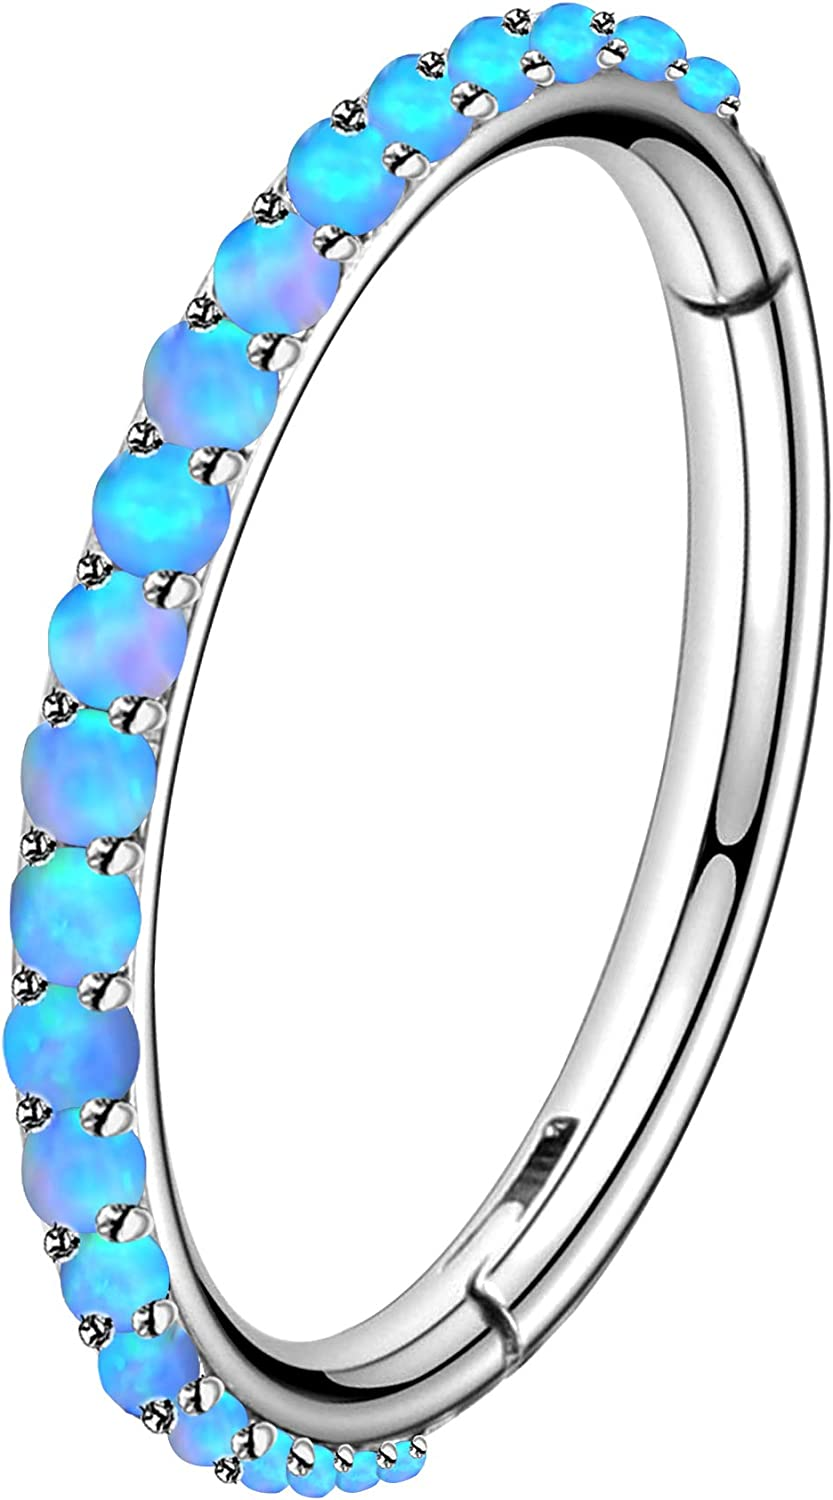 OUFER Cartilage Earring Hoop 16G Stainless Steel with White/Blue/Pink Opal Paved Helix Conch Lip Septum Piercing Jewelry